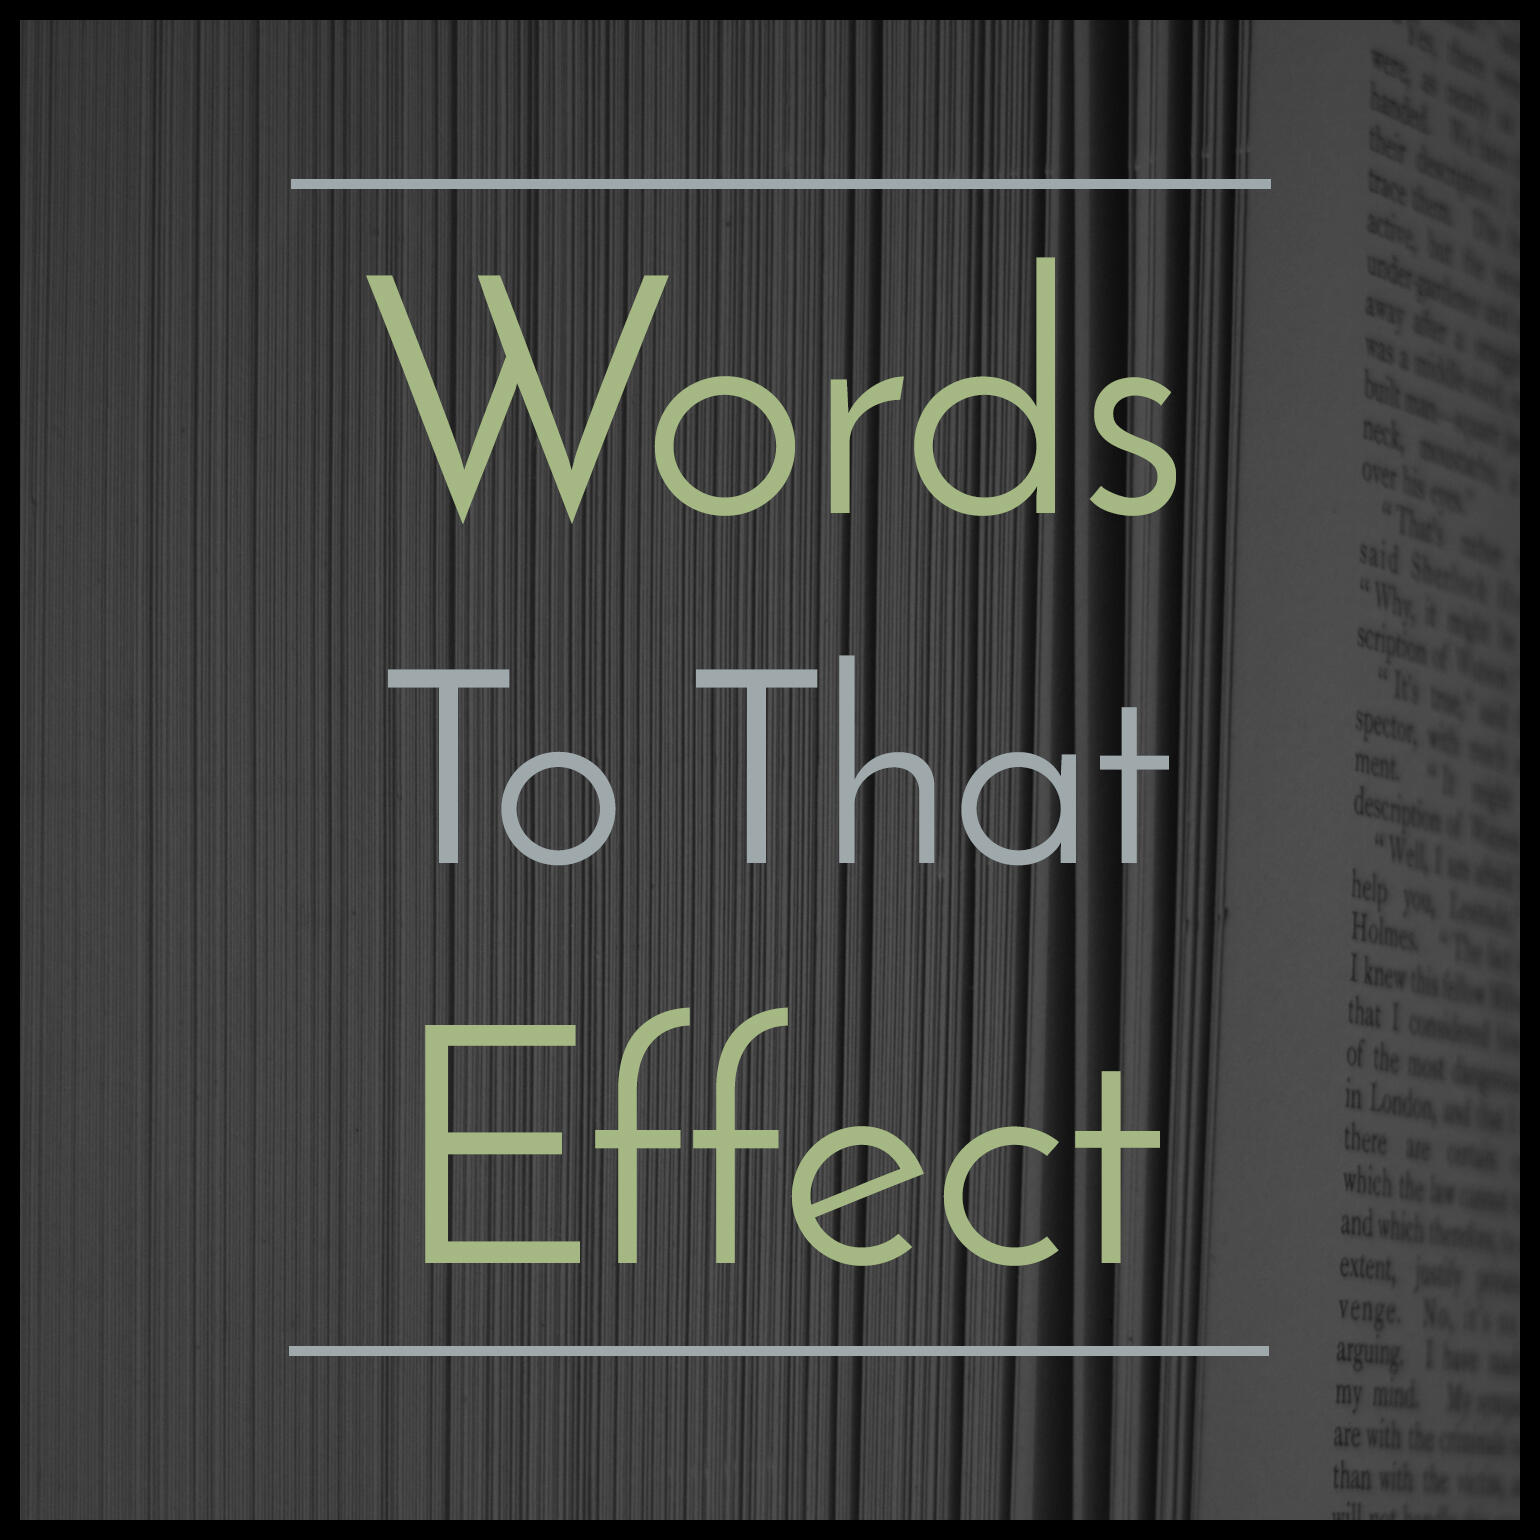 words to that effect